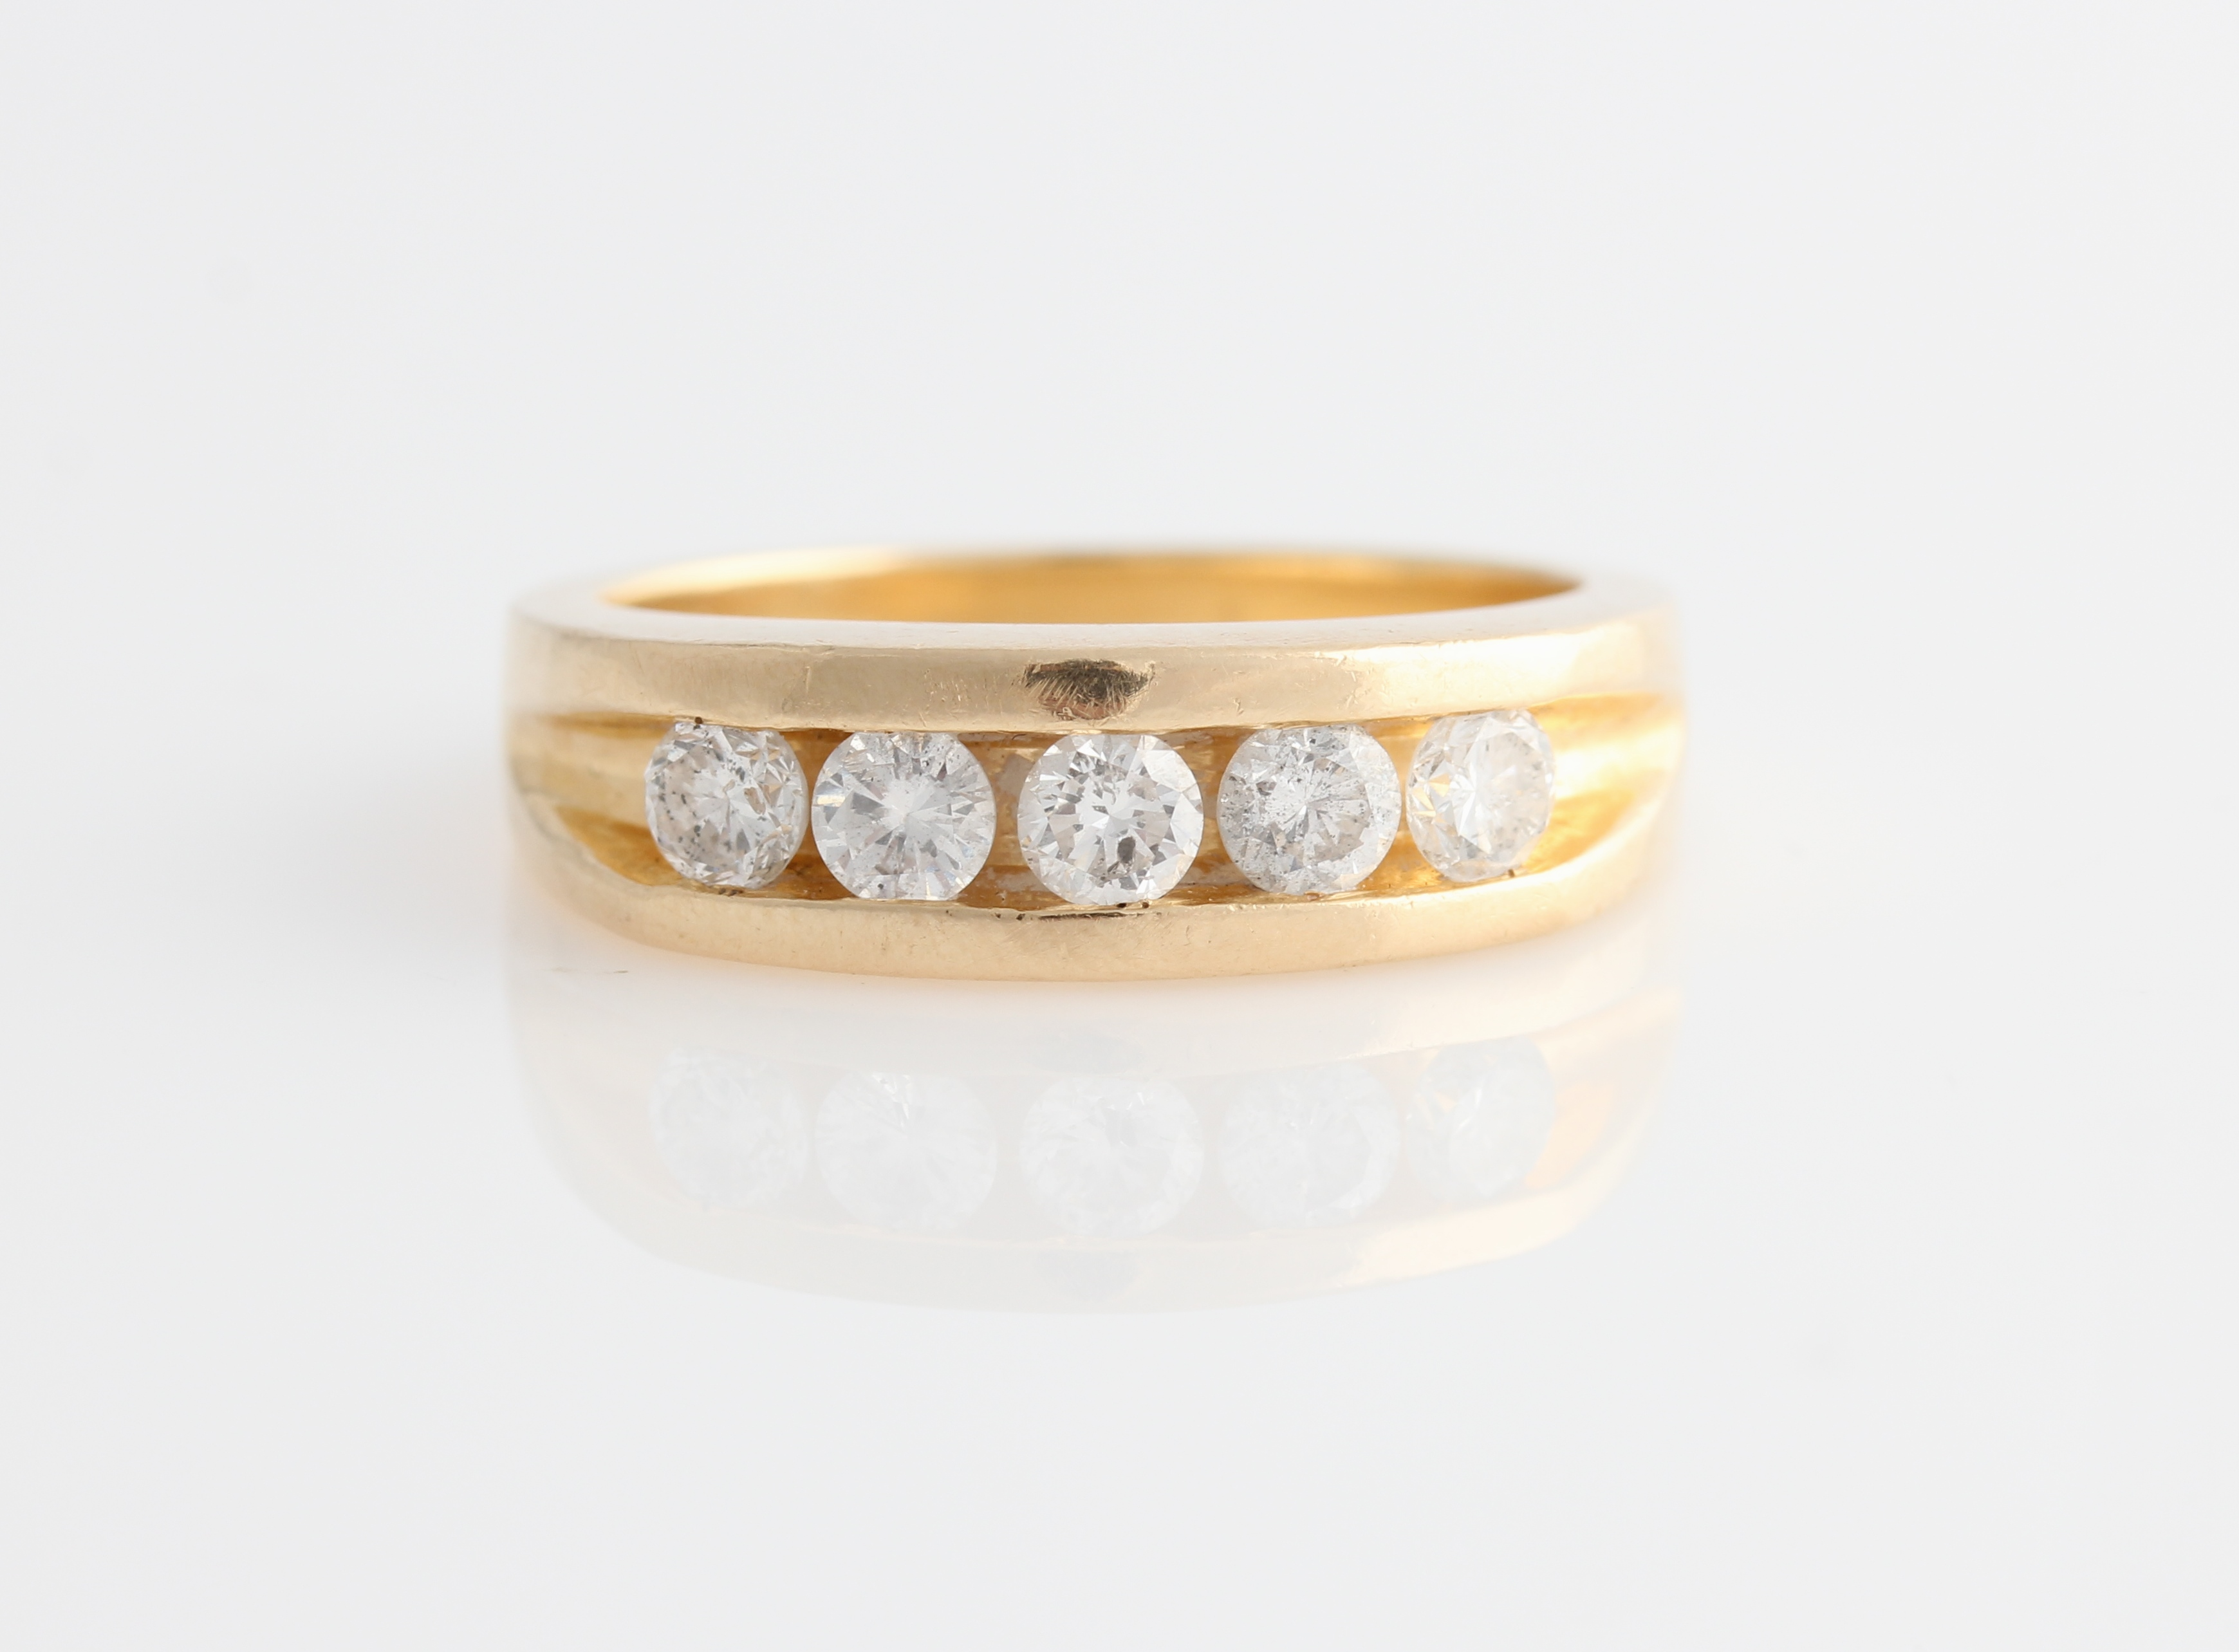 Lot 54 - A gents five stone diamond ring, set with five round brilliant cut diamonds, total diamond weight